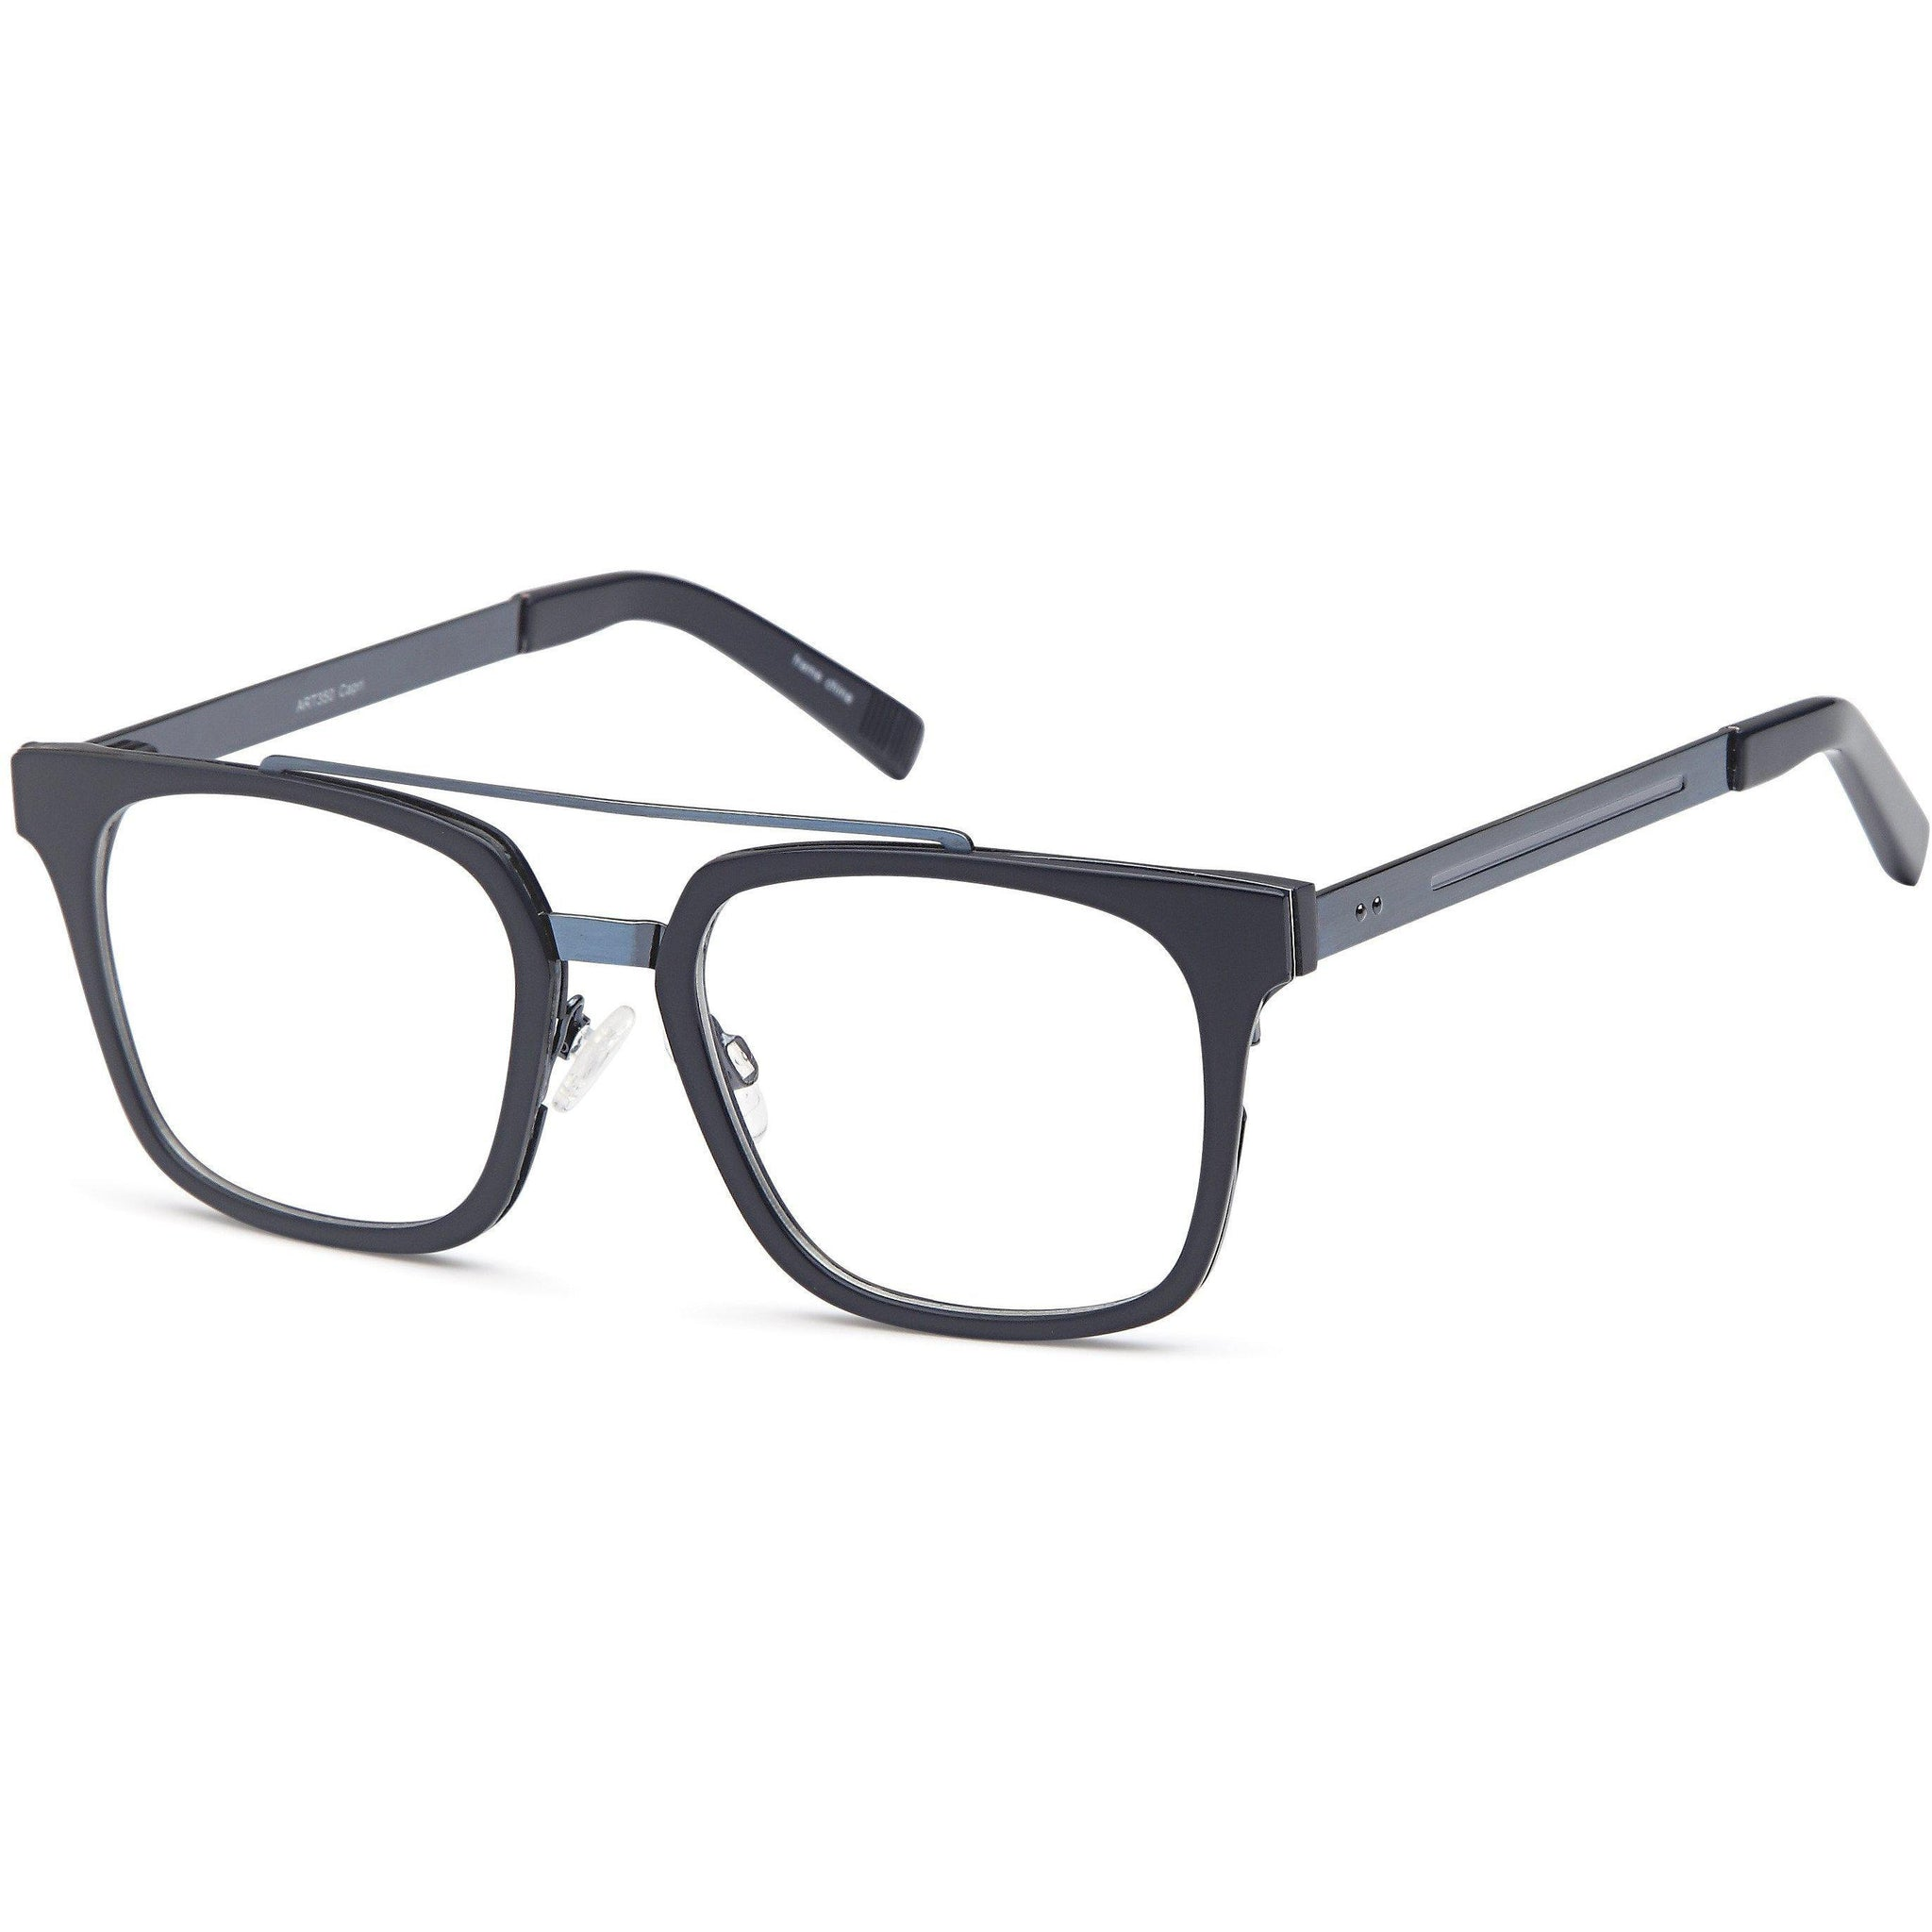 Sophistics Prescription Glasses ART 350 Frame